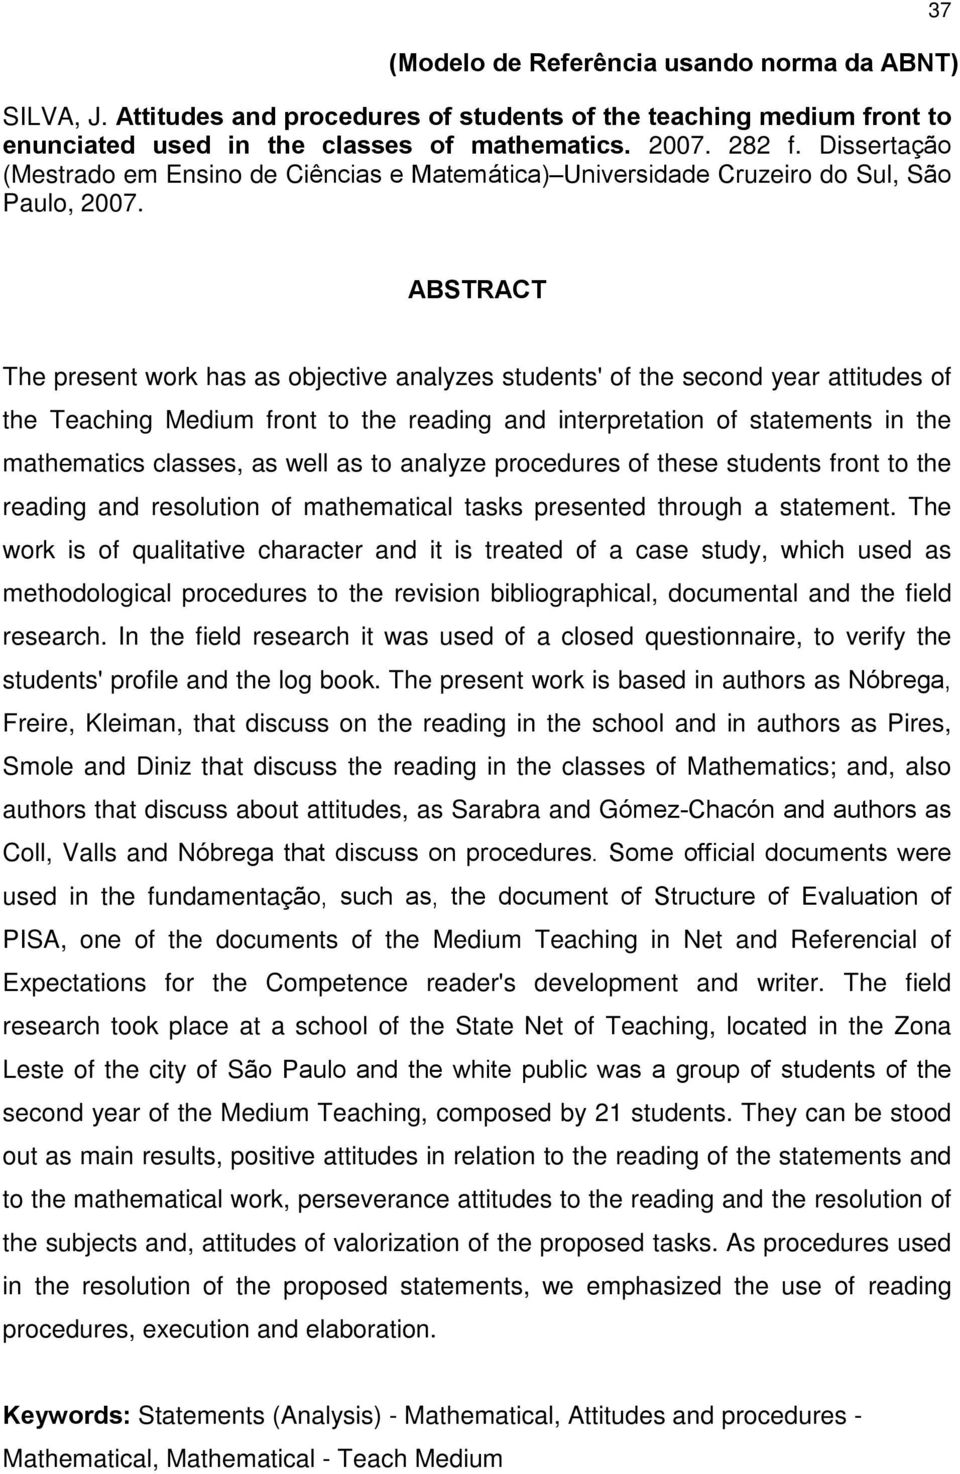 37 (Modelo de Referência usando norma da ABNT) ABSTRACT The present work has as objective analyzes students' of the second year attitudes of the Teaching Medium front to the reading and